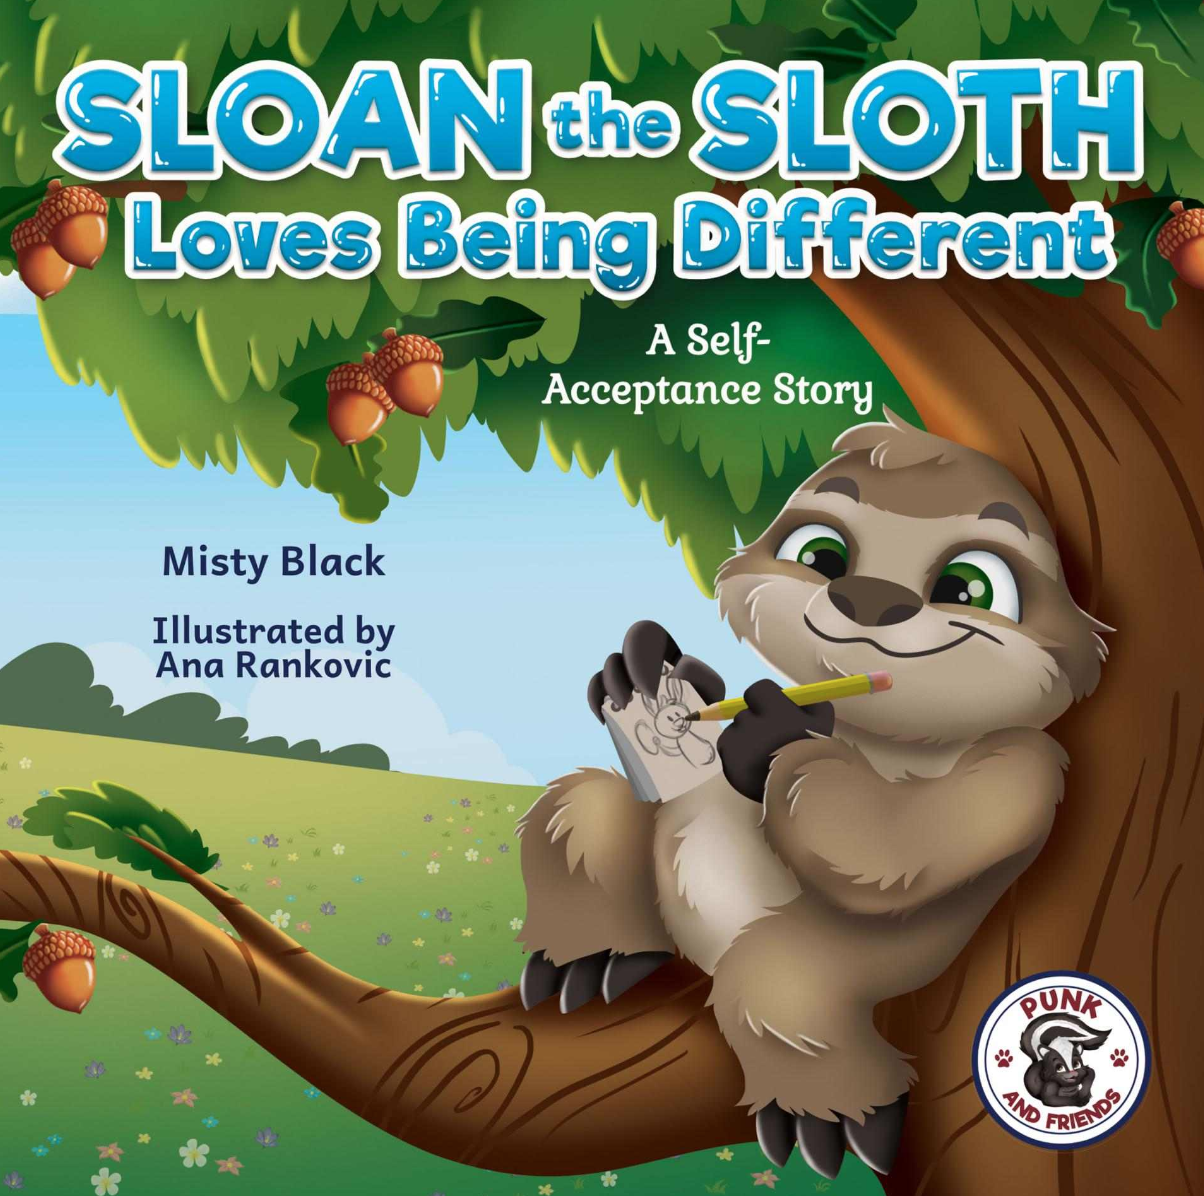 Sloan the Sloth Loves Being Different